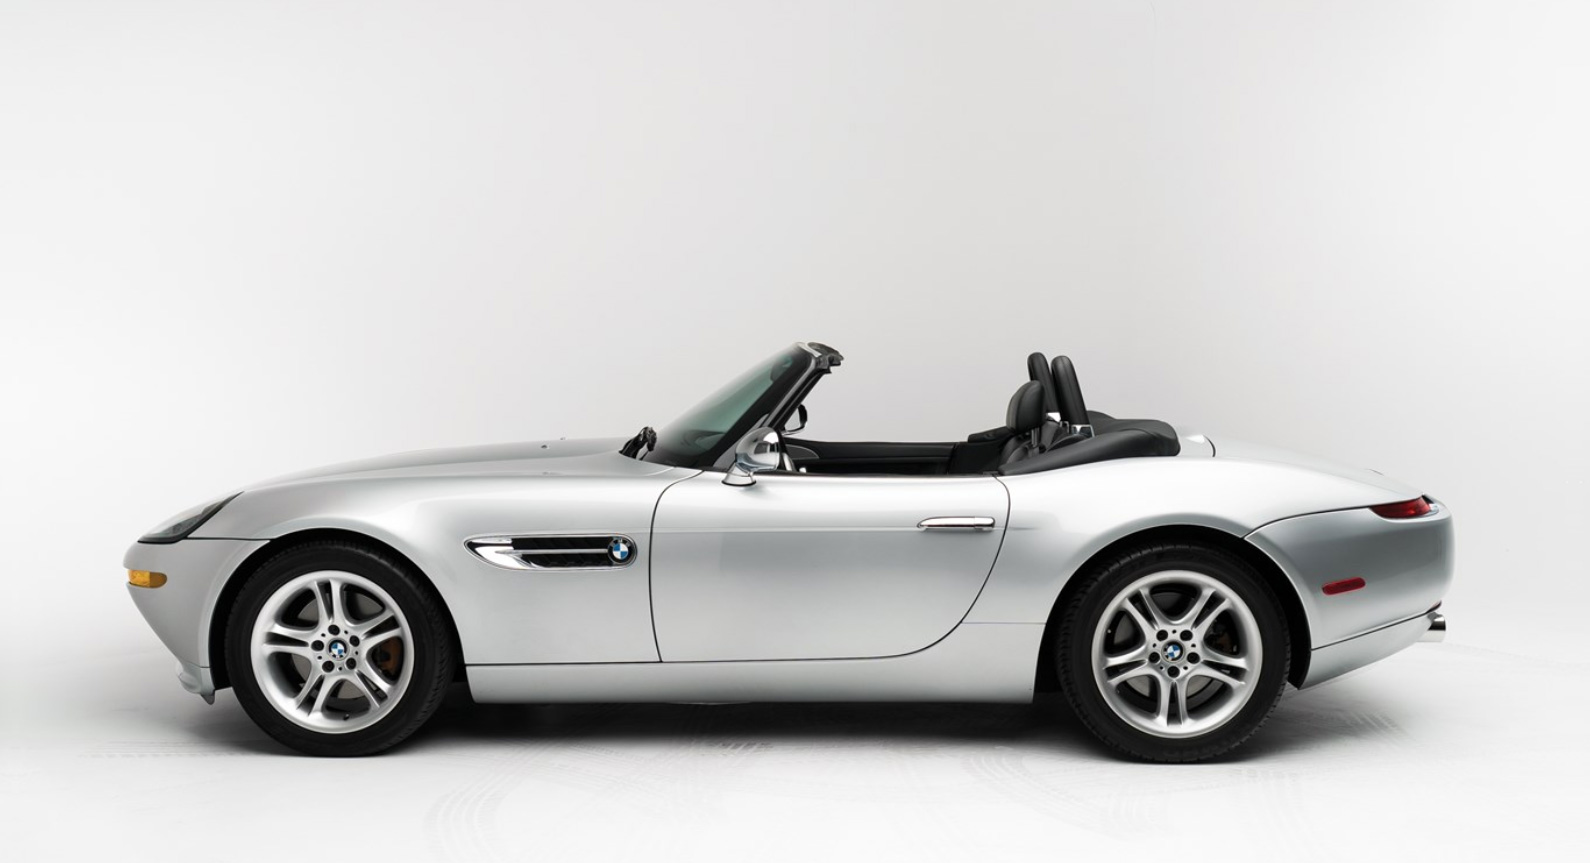 Steve Jobs Once Owned This Classic Minimalist BMW Z8